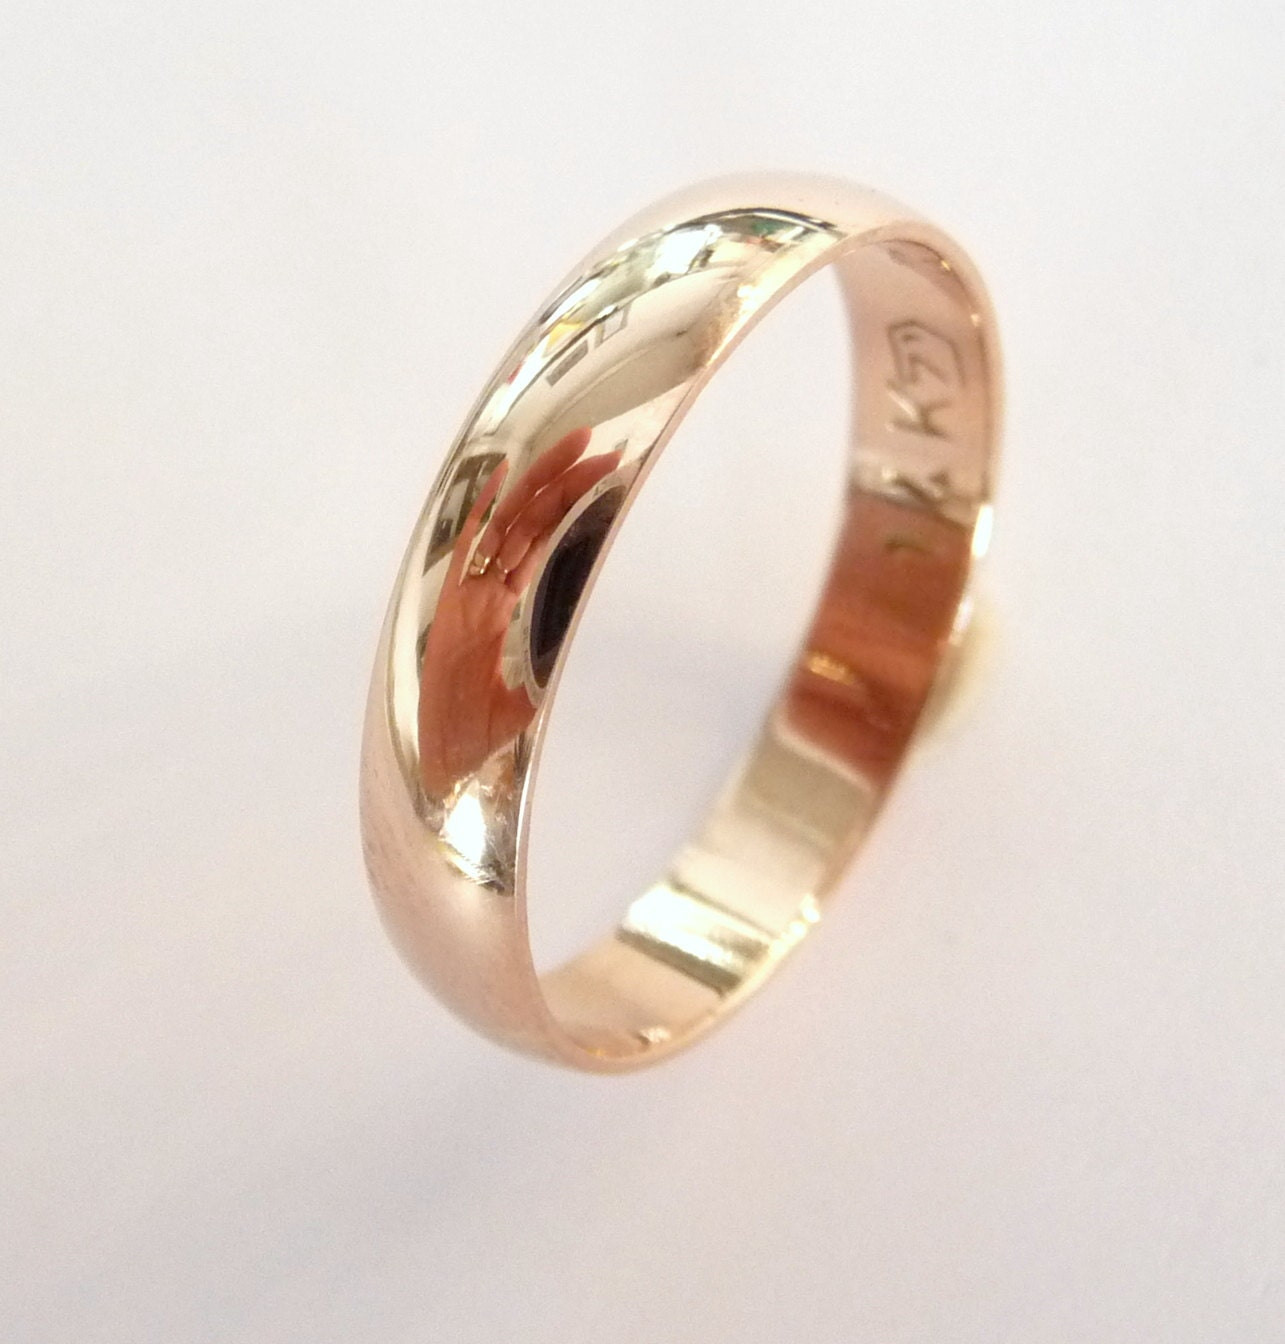 rose gold wedding band women and men wedding ring 4mm wide